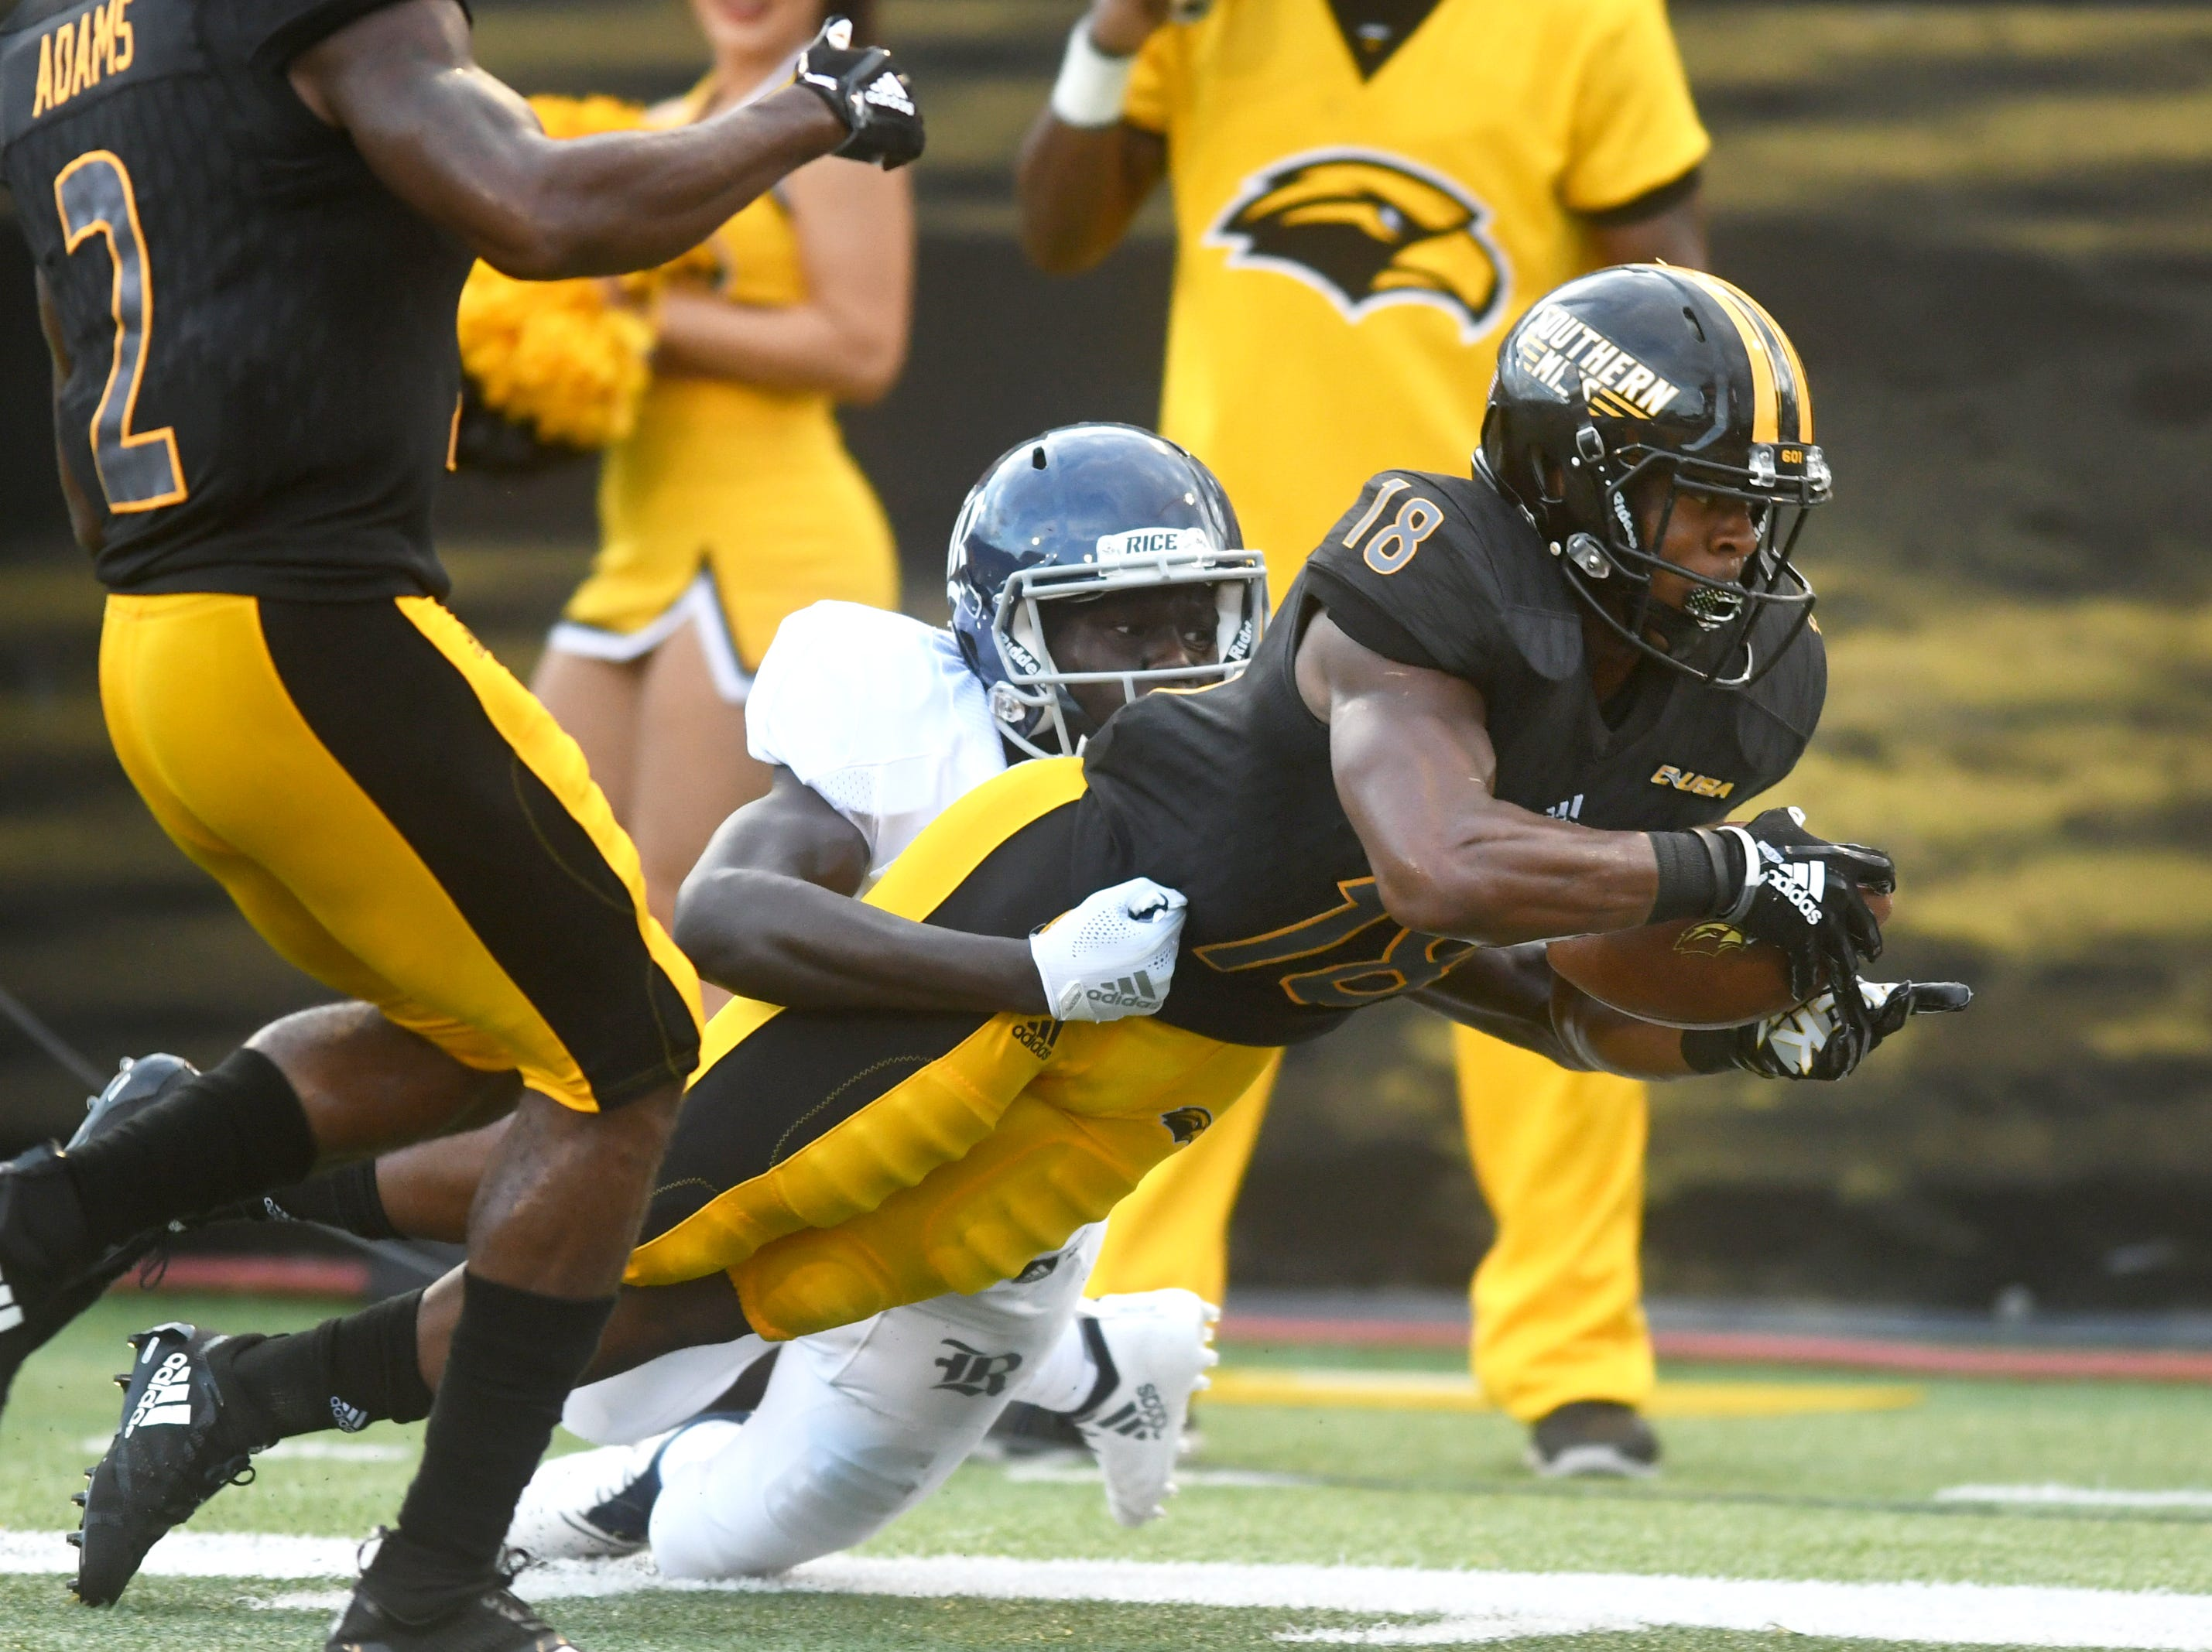 Southern Miss wide receiver De'Michael Harries reaches towards the end zone in a game against Rice at M.M. Roberts Stadium on Saturday, September 22, 2018.